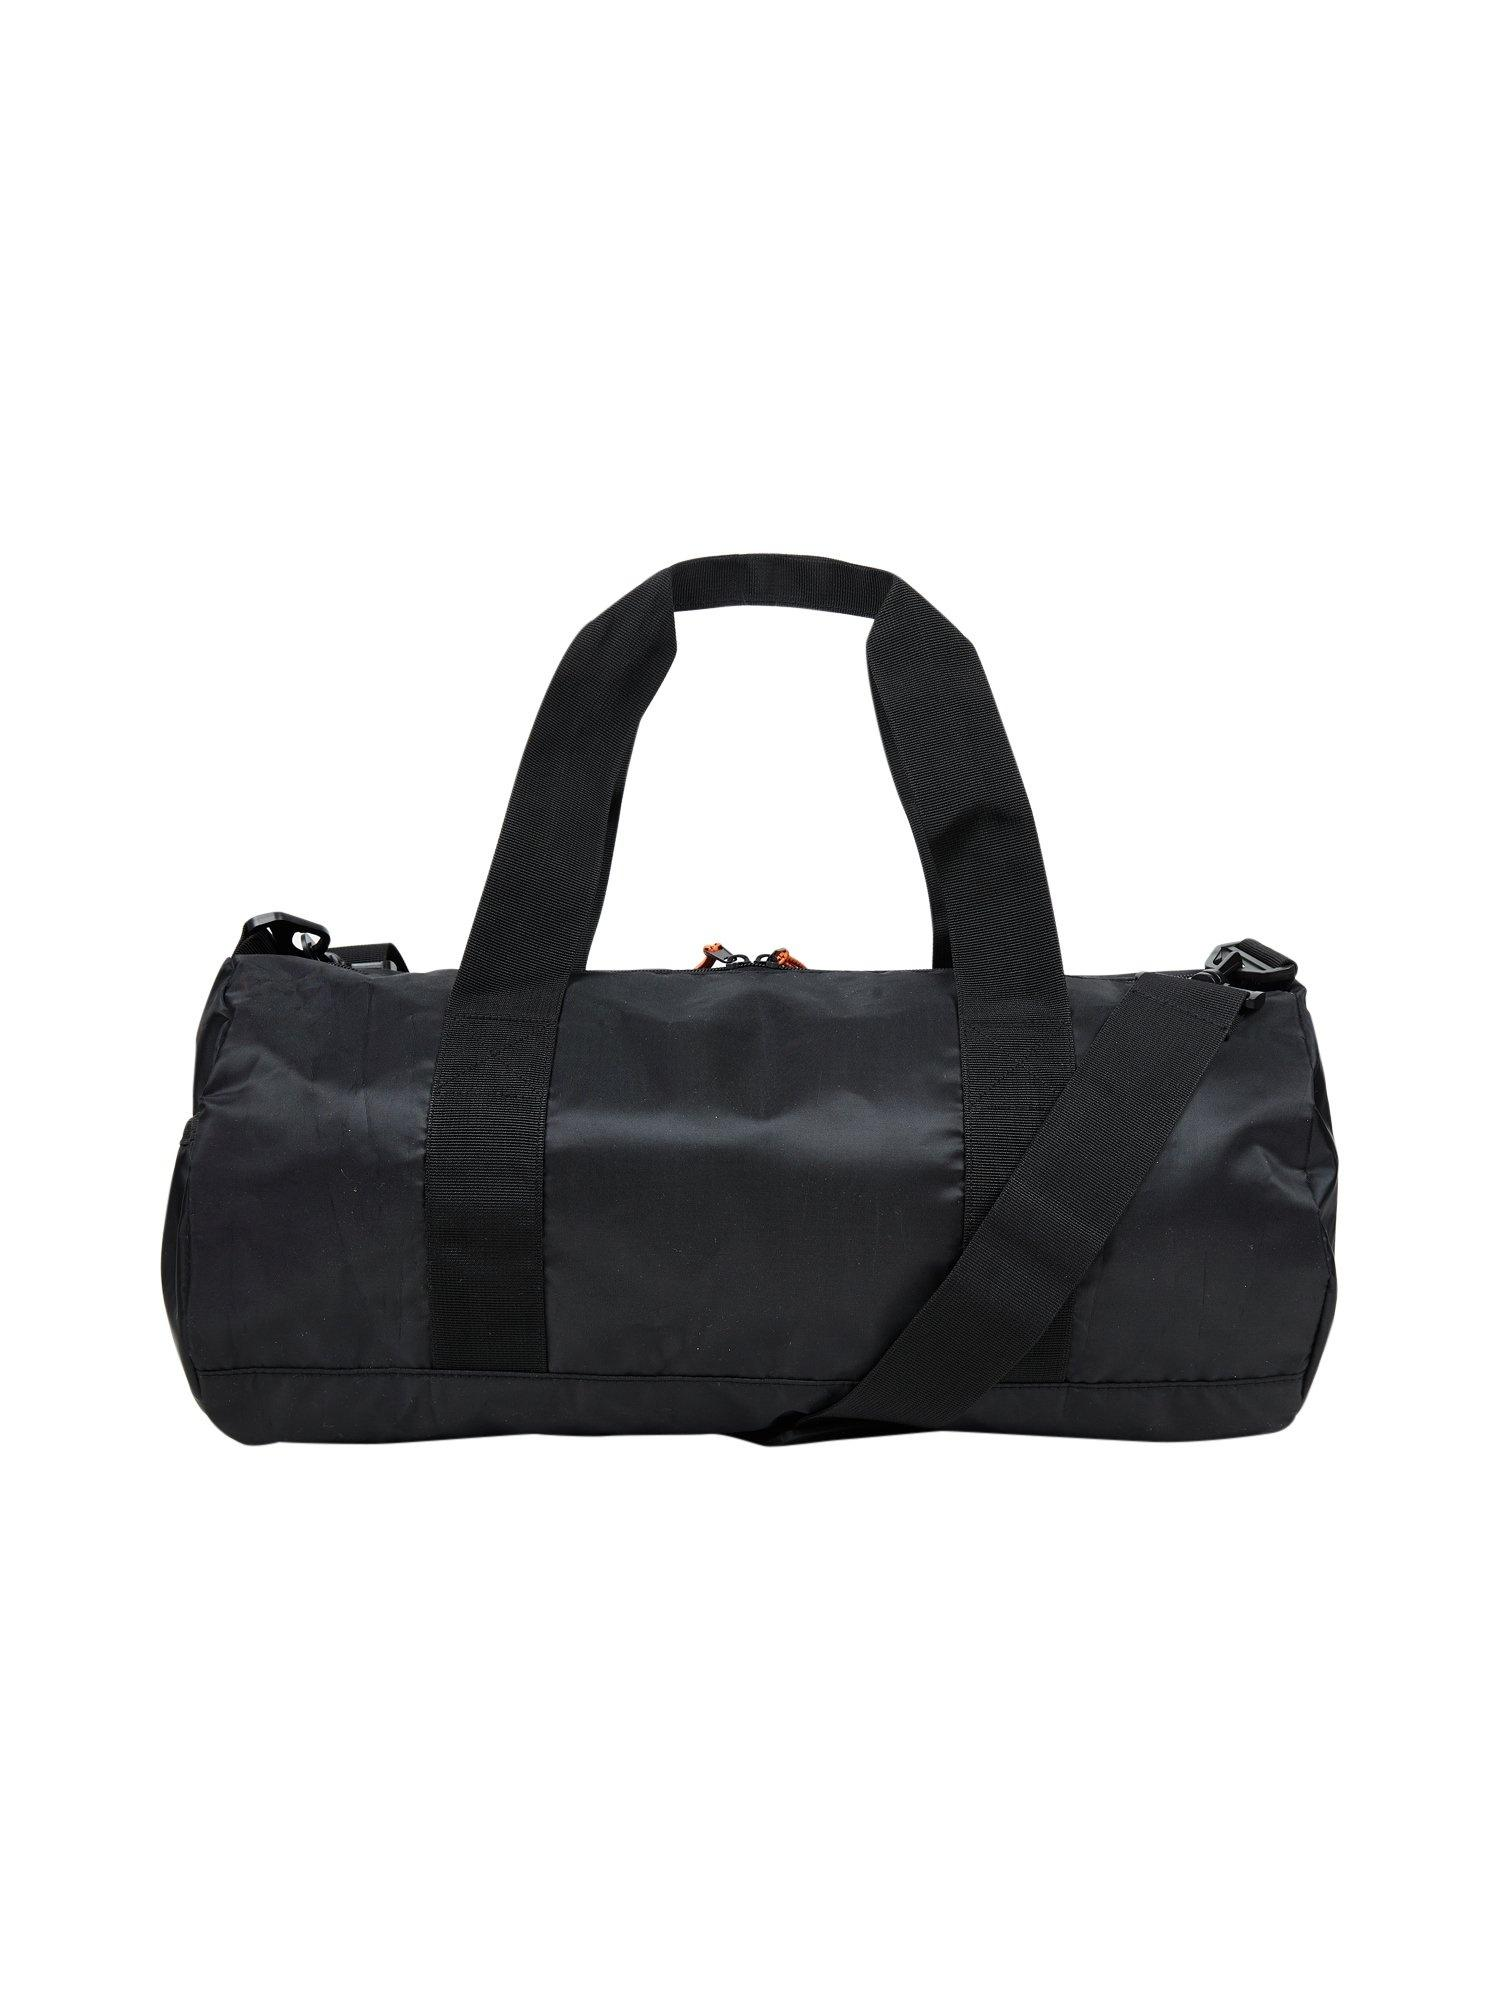 bbc8f7a59b698c Burton Black Sports Holdall Bag in Black for Men - Lyst